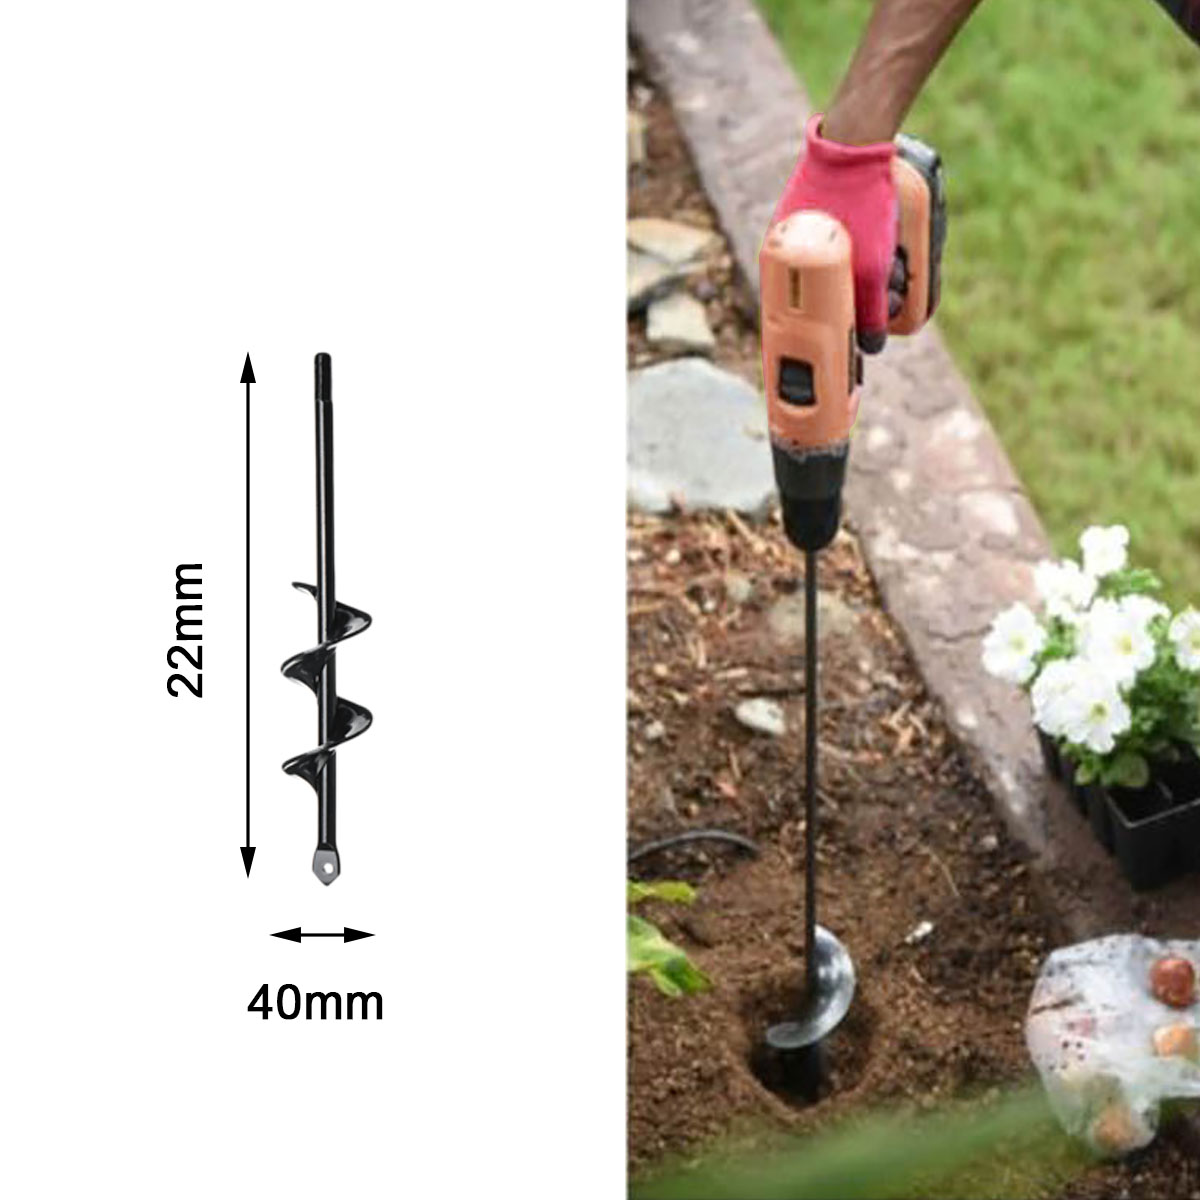 Tool - Earth Auger Hole Digger Tool Garden Planting Machine Drill Bit Fence Borer Post Hole Digger